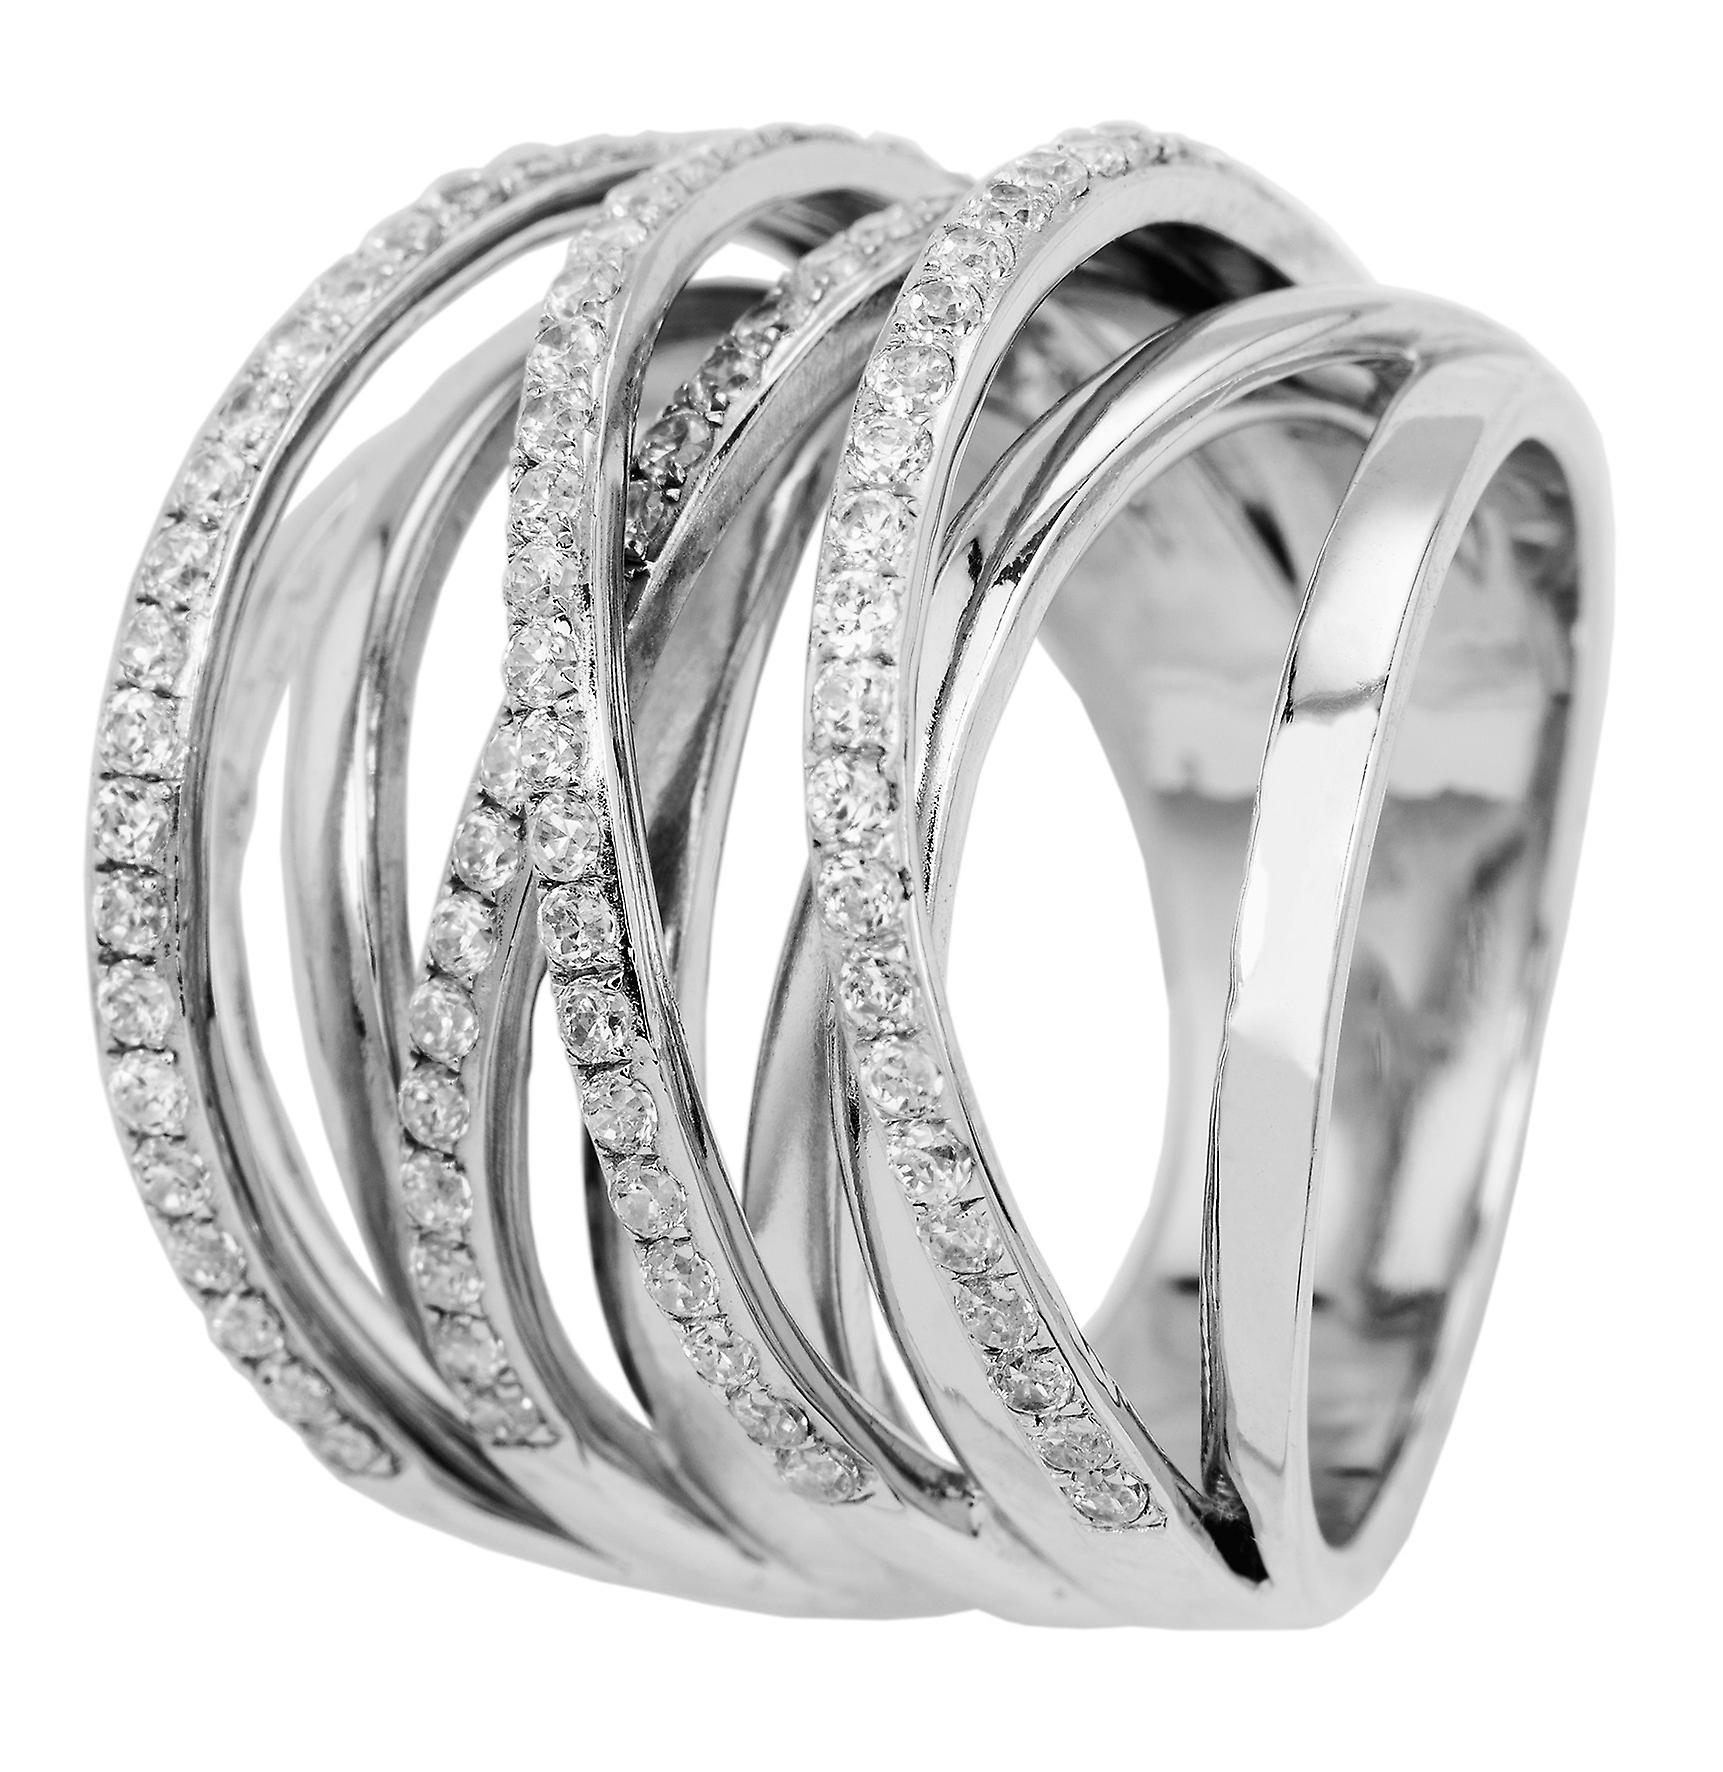 Burgmeister women's ring JBM2004-111, 925 sterling silver rhodanized, white zirconia